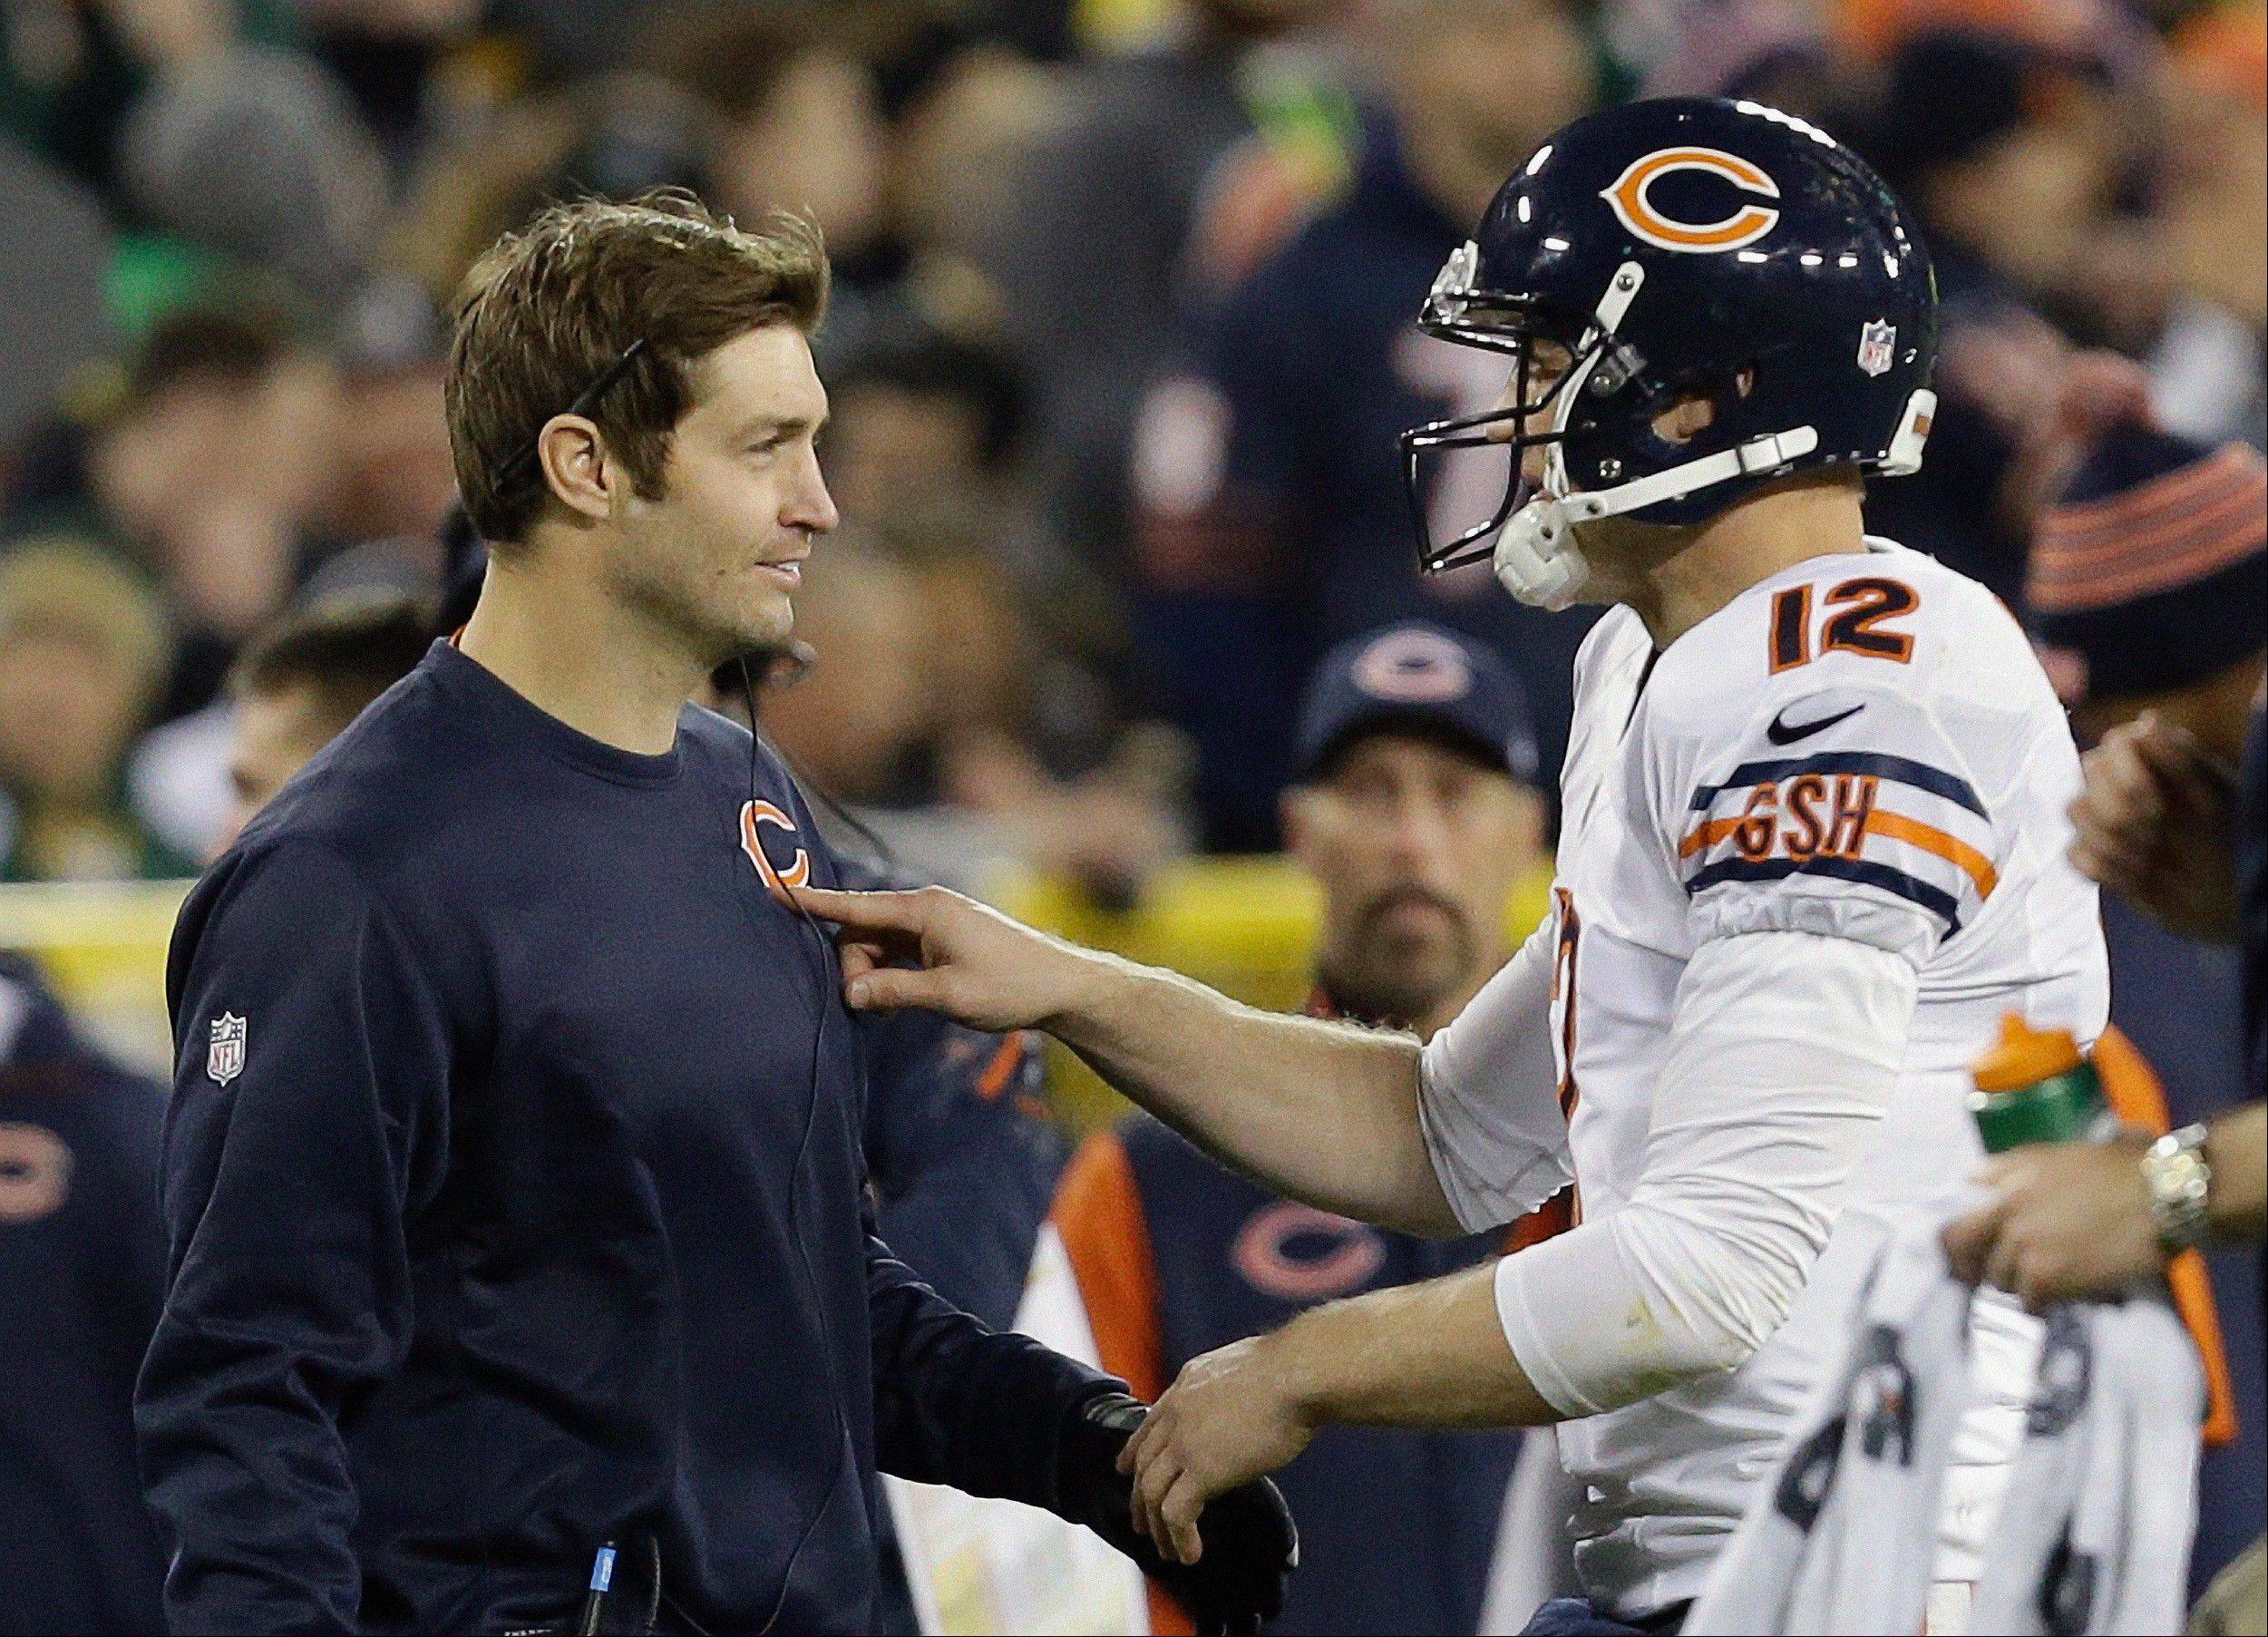 Bears quarterbacks Josh McCown (12) and Jay Cutler chat during Monday's 27-20 win over the Packers.